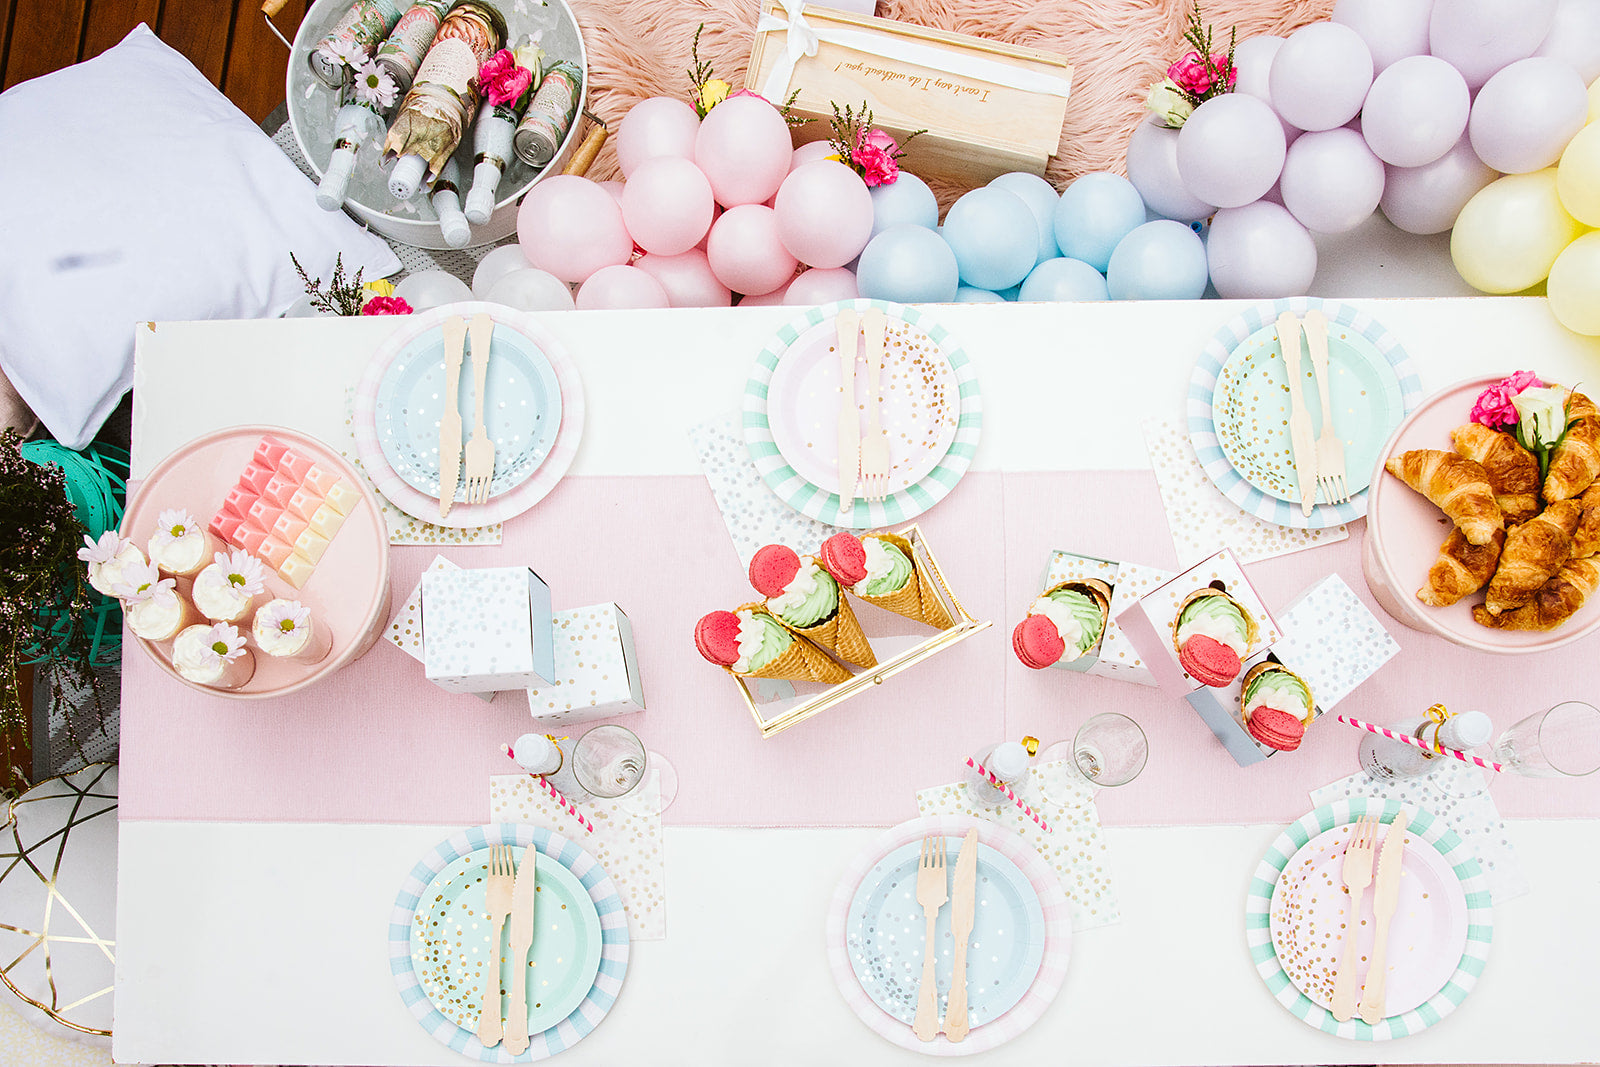 pastel table setting for bridal shower